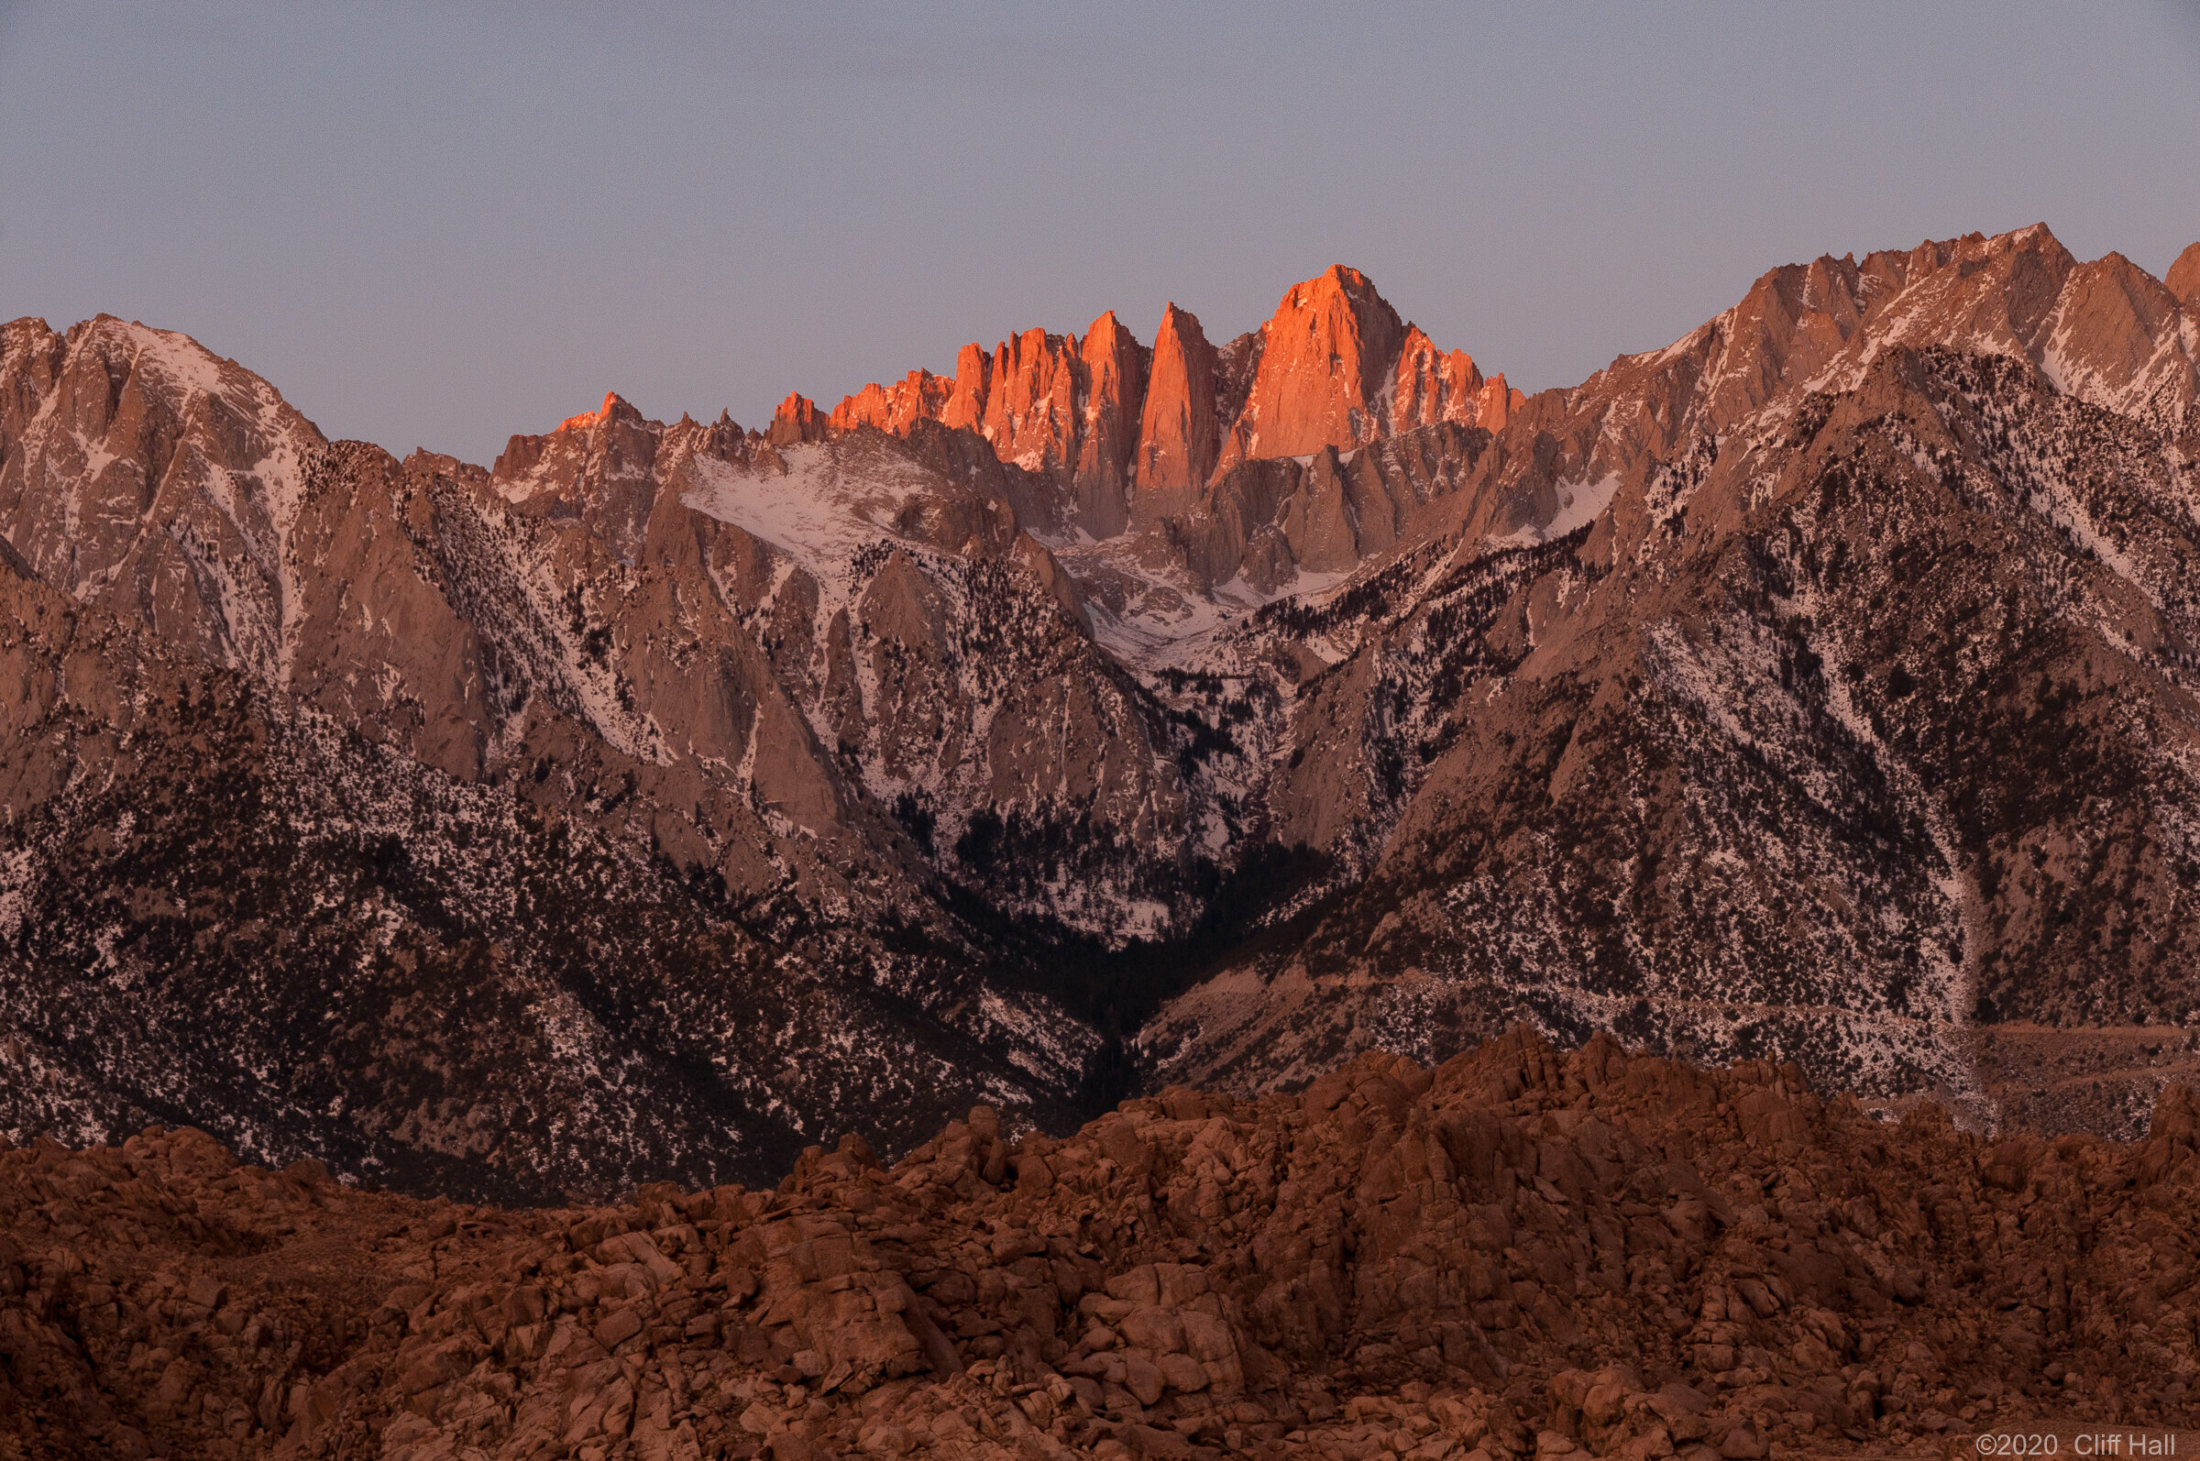 Mt Whitney is the right most peak with sunlight hitting it.